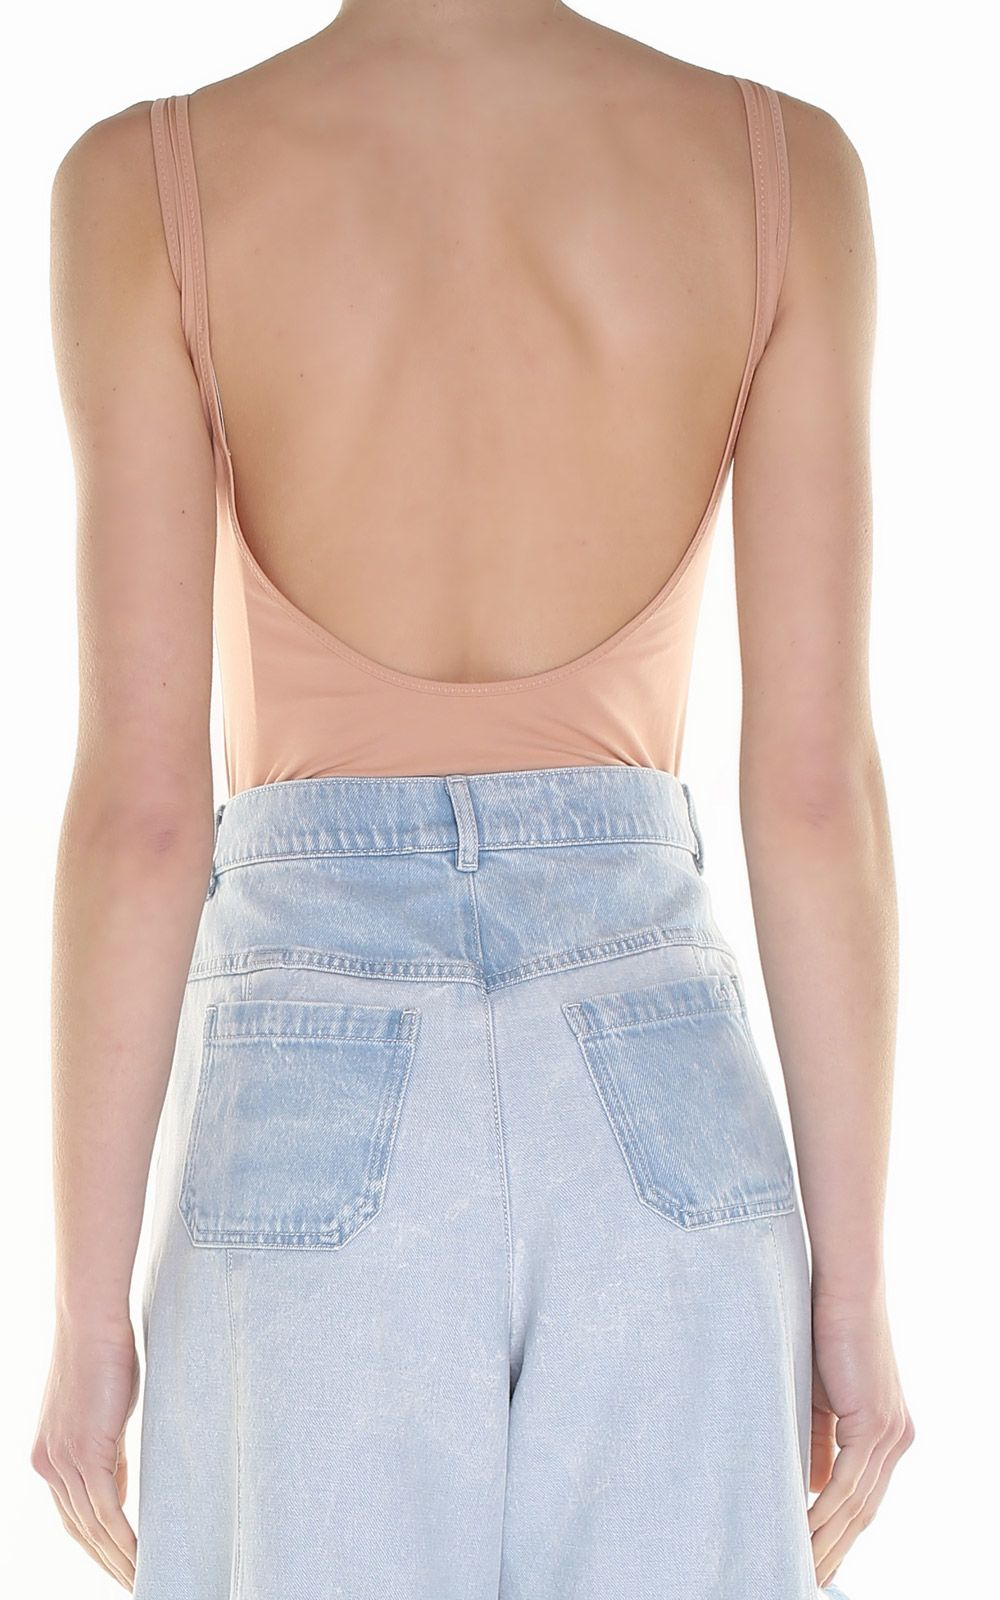 Wilky cotton-blend bodysuit Acne Studios Cheap Usa Stockist Brand New Unisex For Sale Clearance Recommend Fashionable Sale Online cvBlja